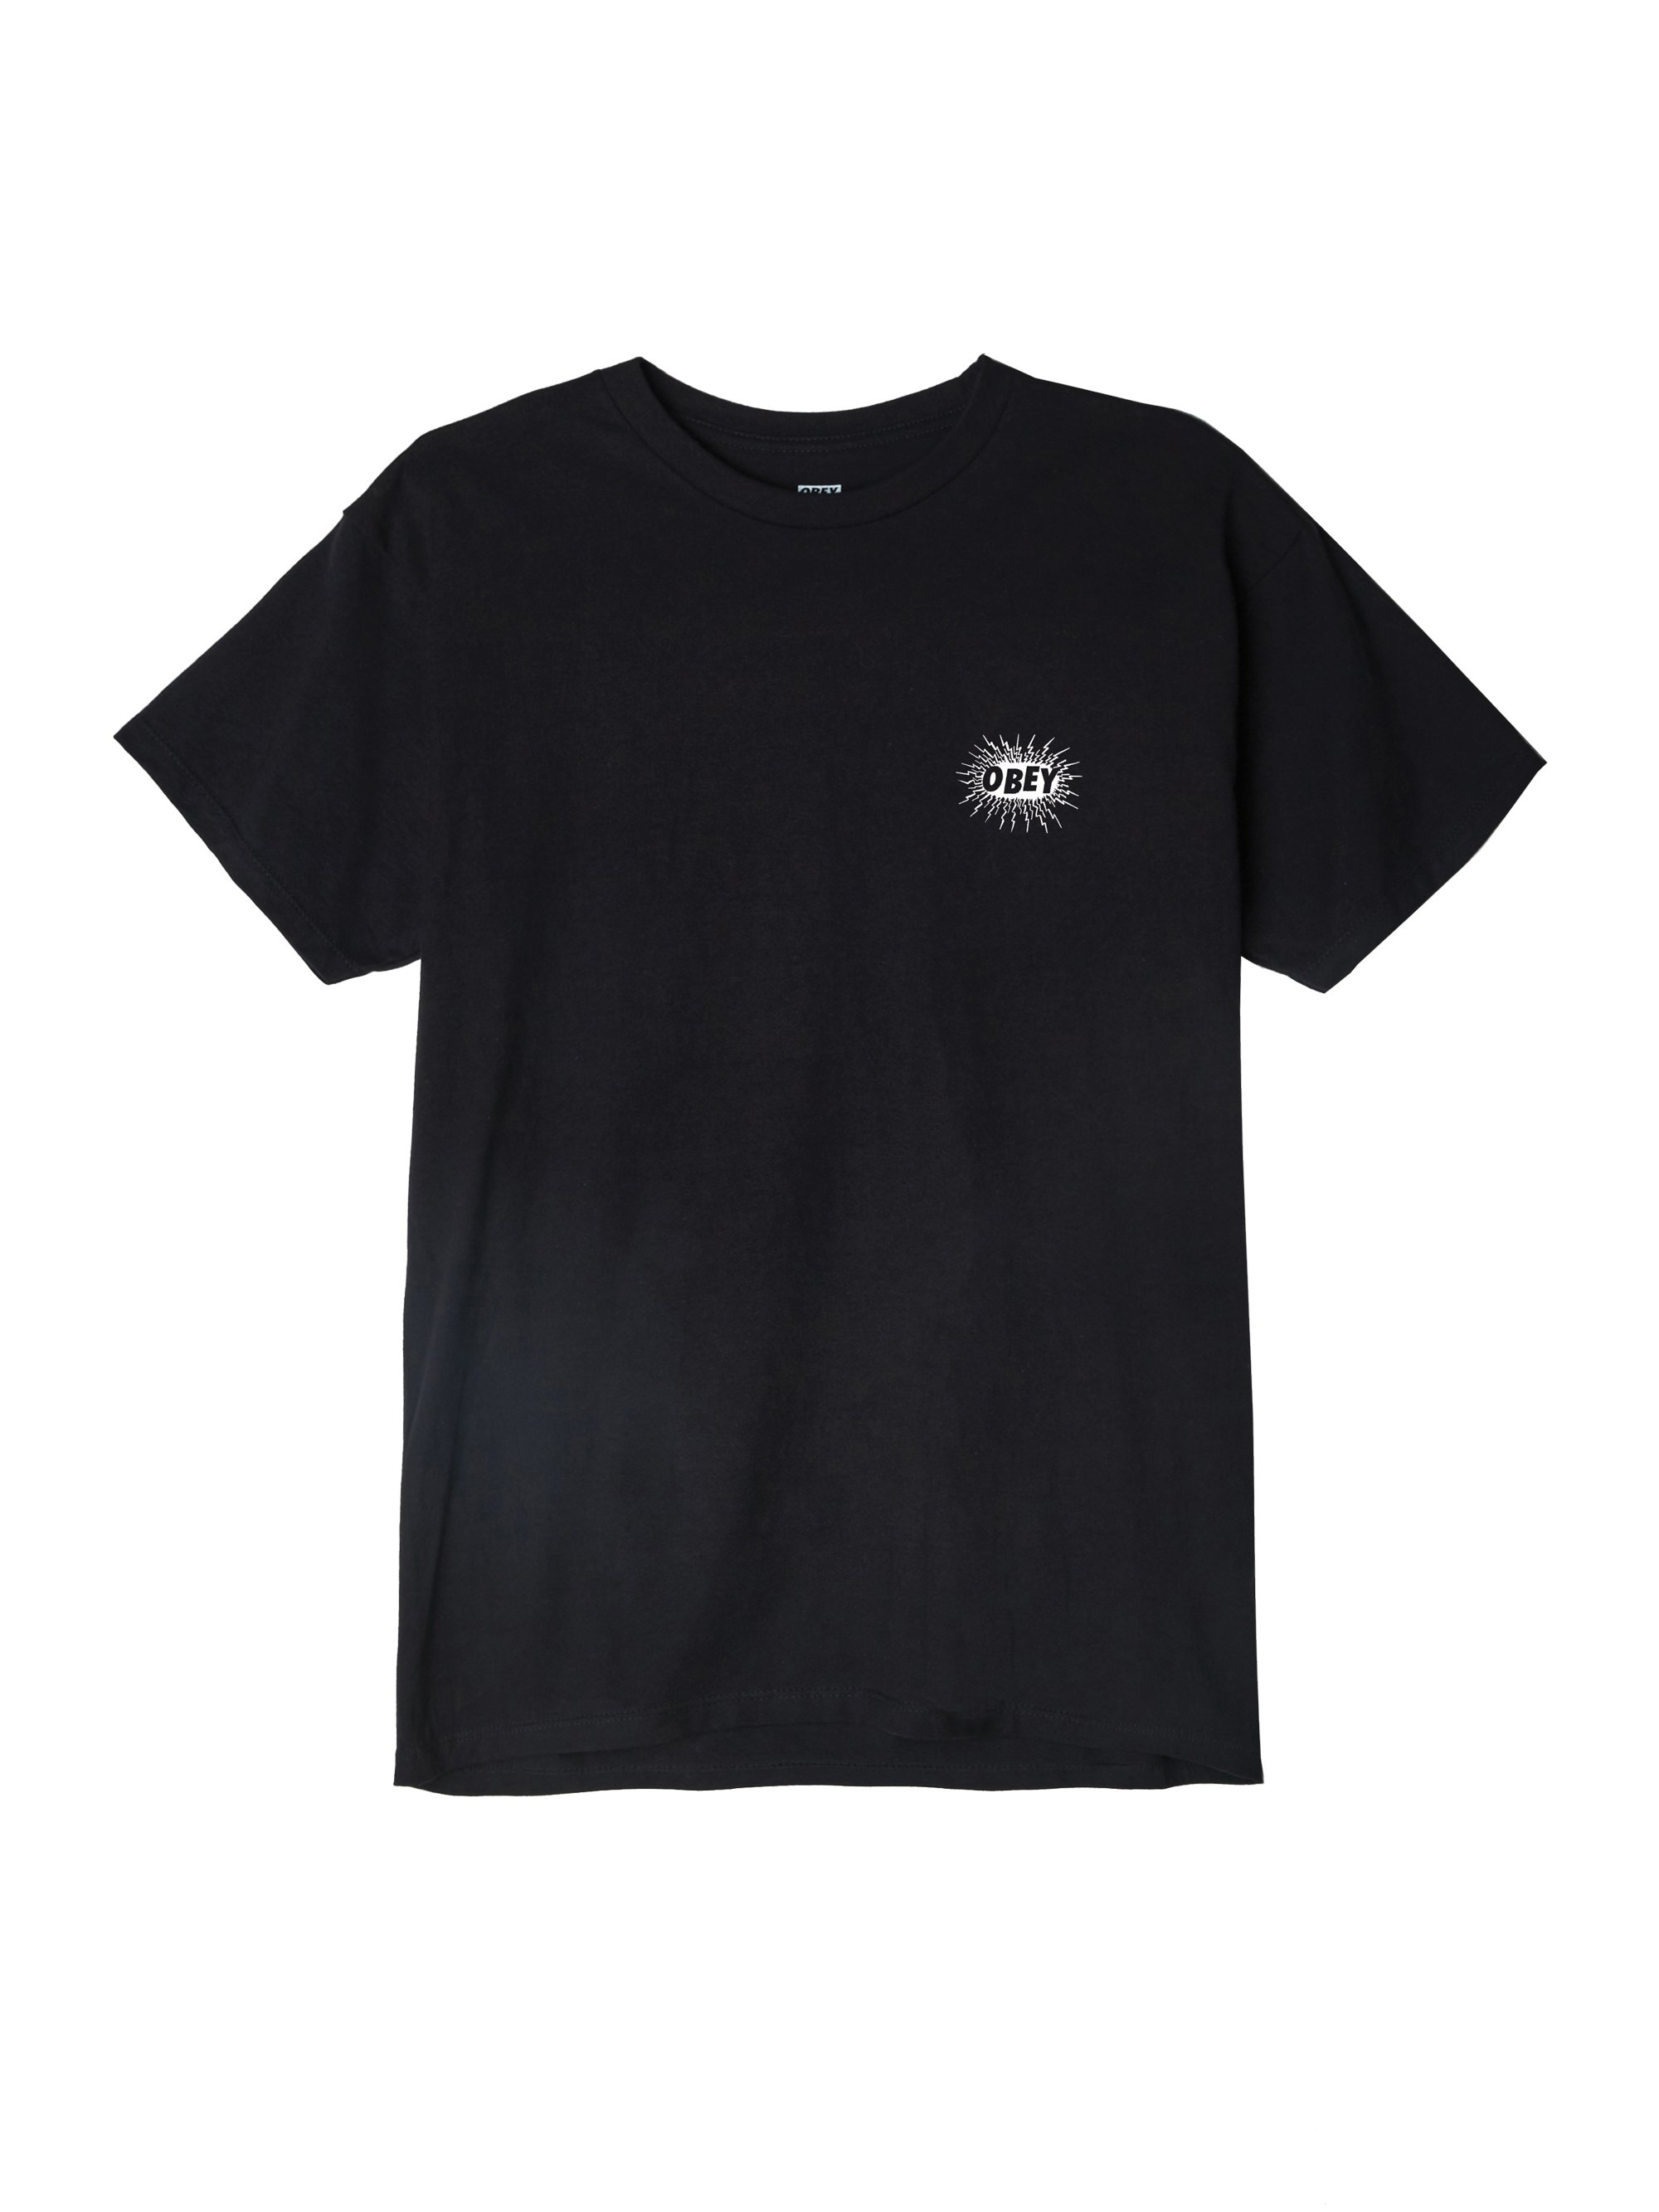 OBEY_Obey_Global_Dissent_Basic_T-Shirt_163081902_BLK_2_2000x.jpg